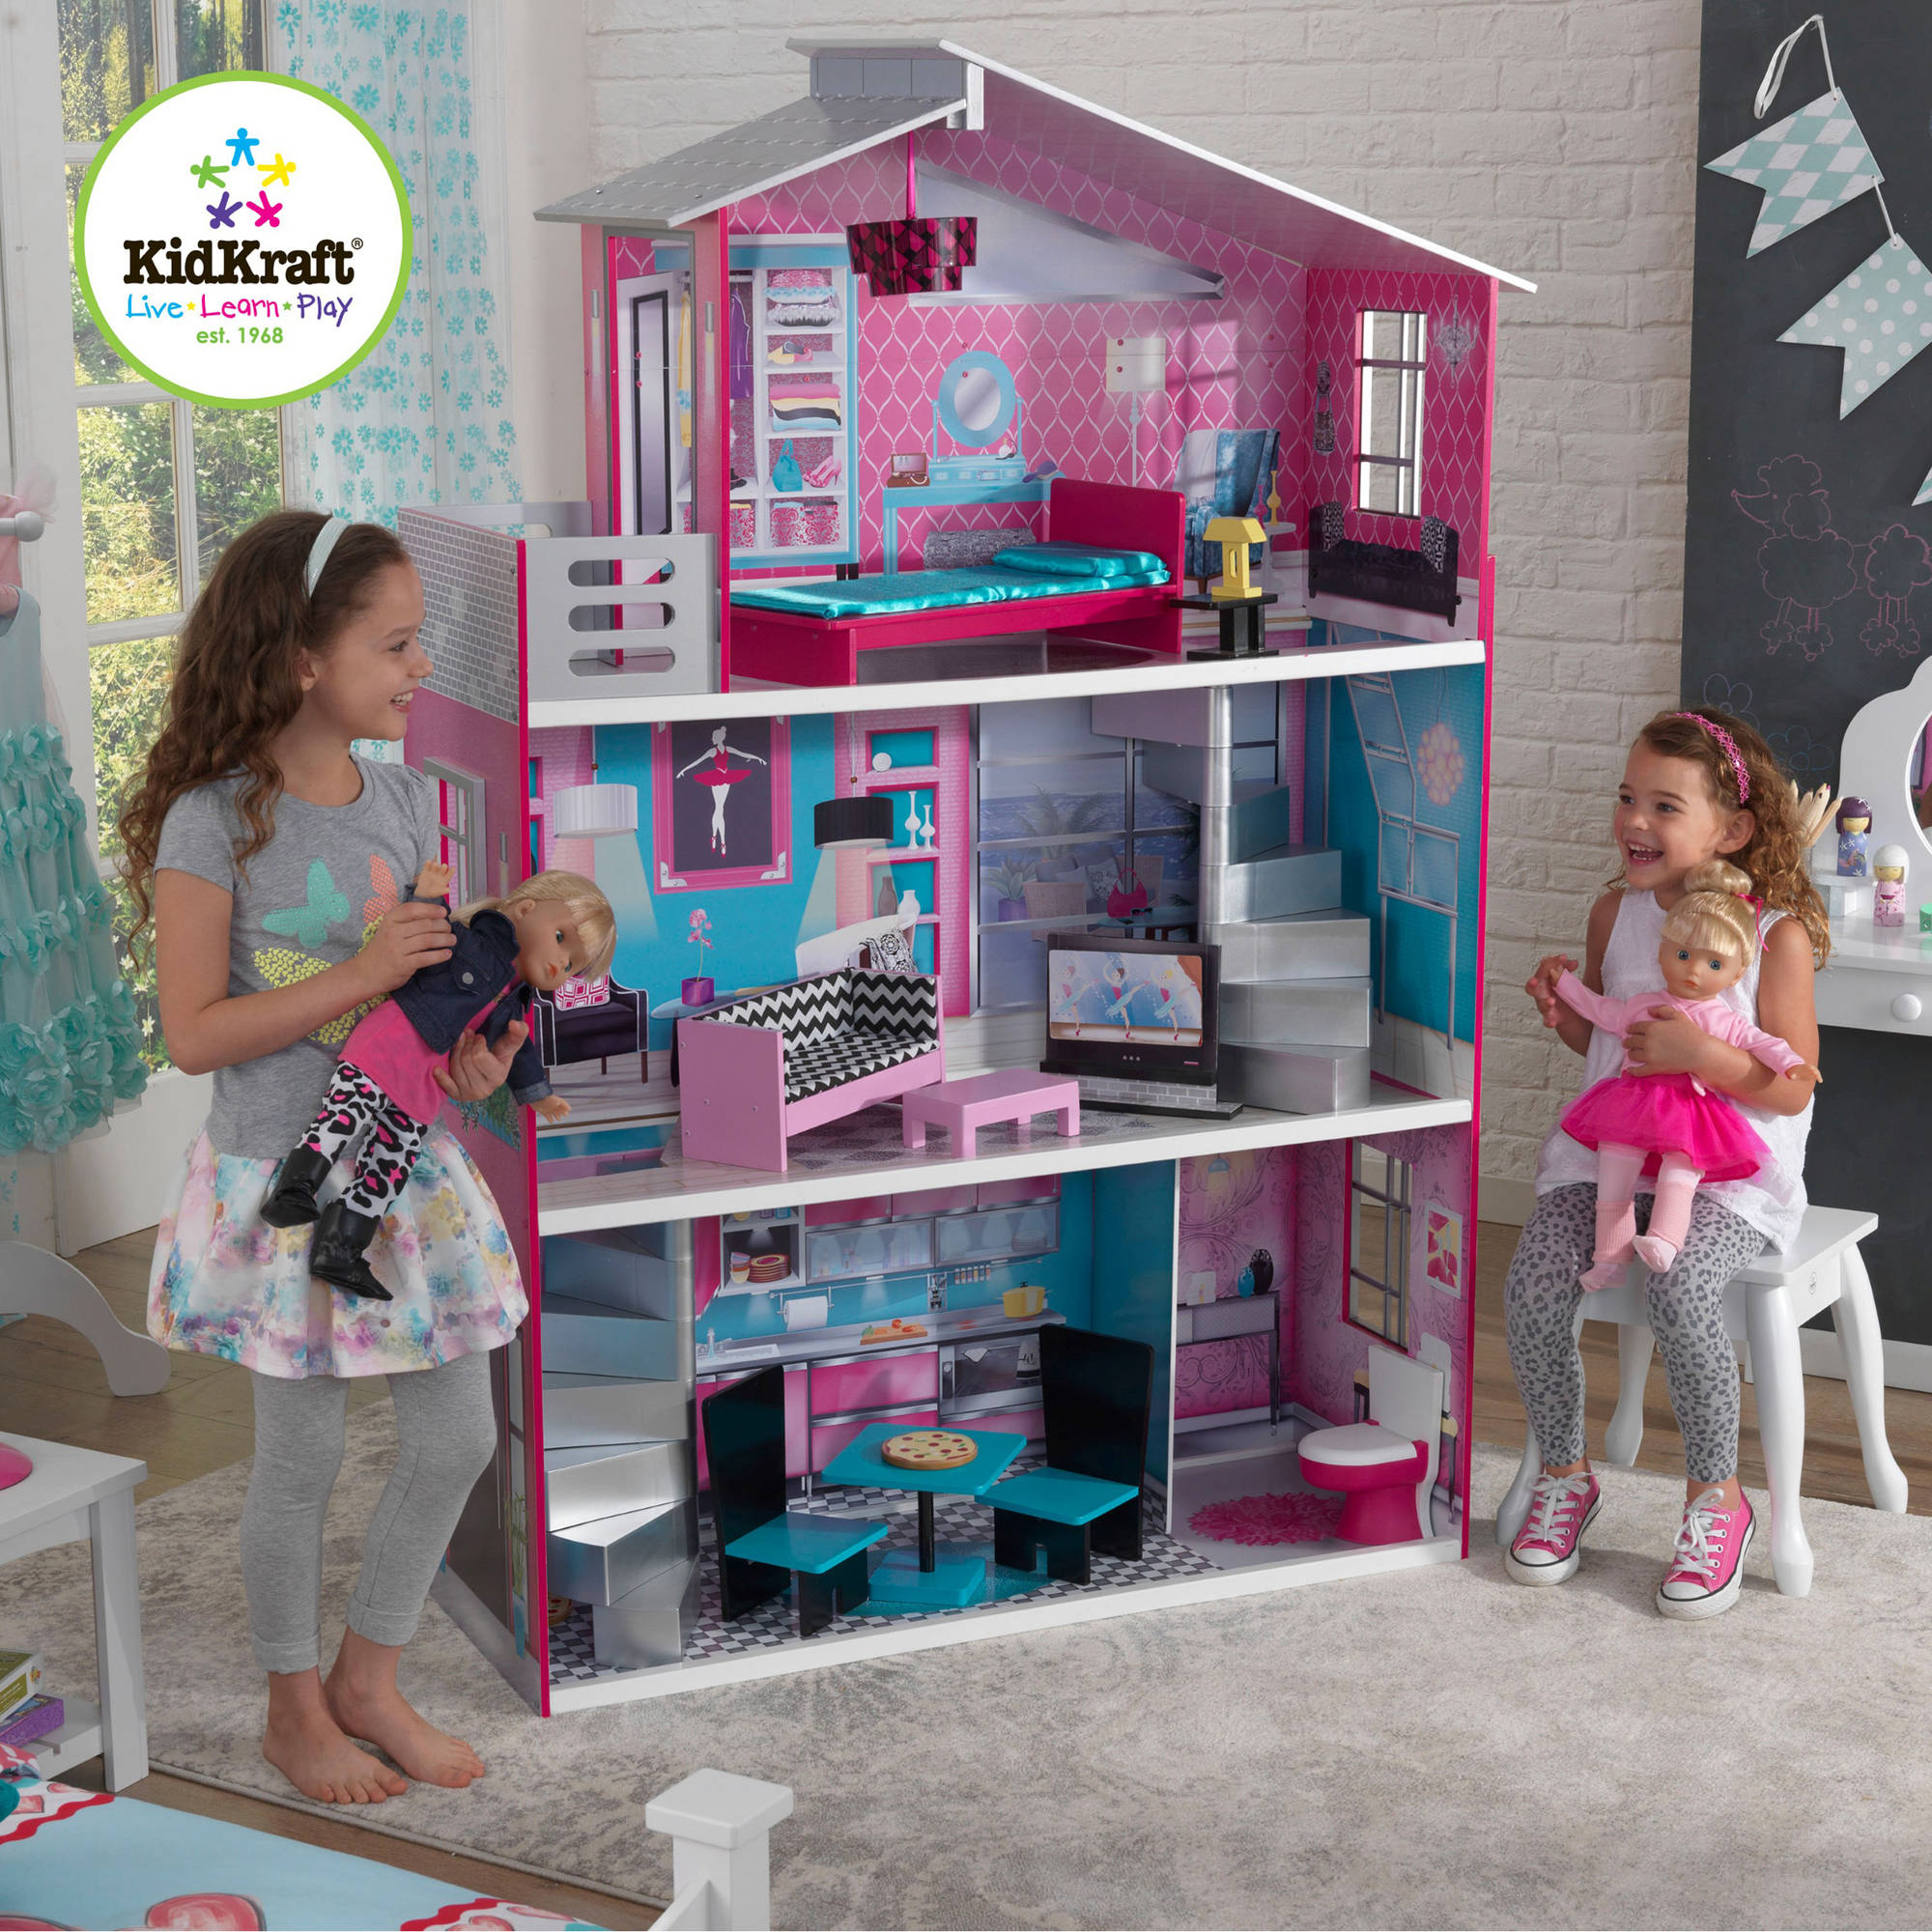 "KidKraft Breanna Wooden Dollhouse with 12 Pieces of Furniture for 18"" Dolls"